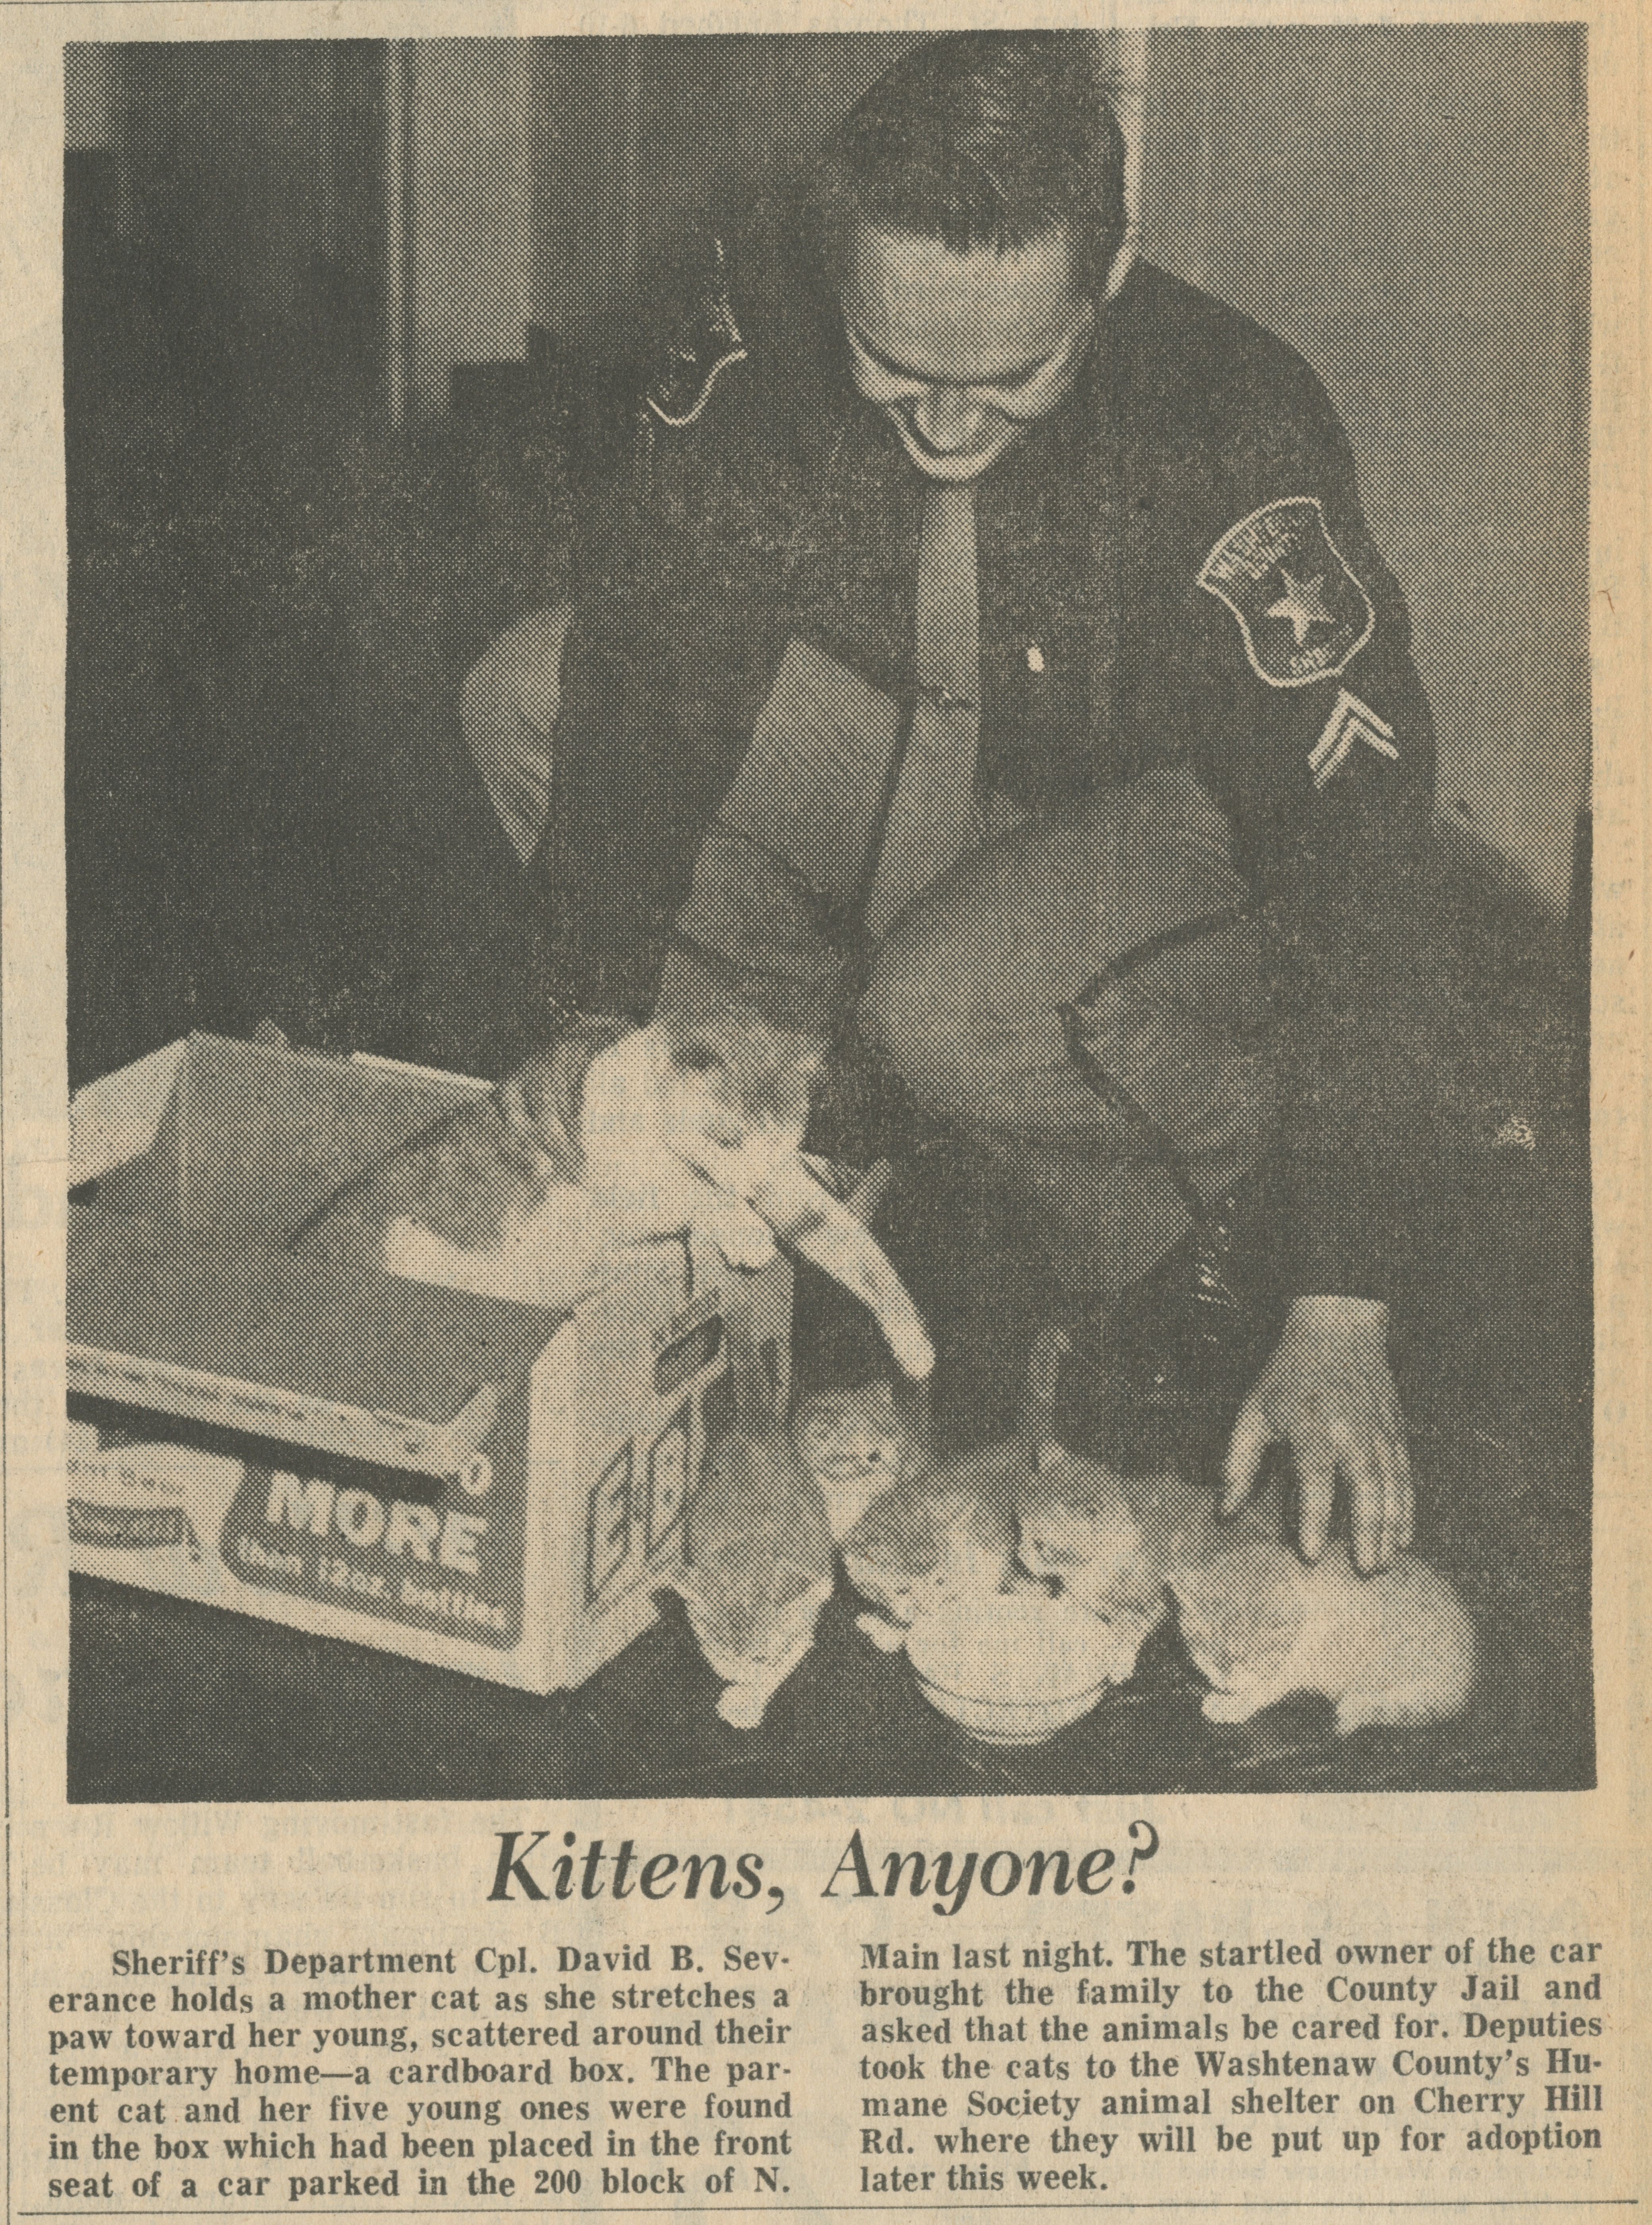 Kittens, Anyone? image